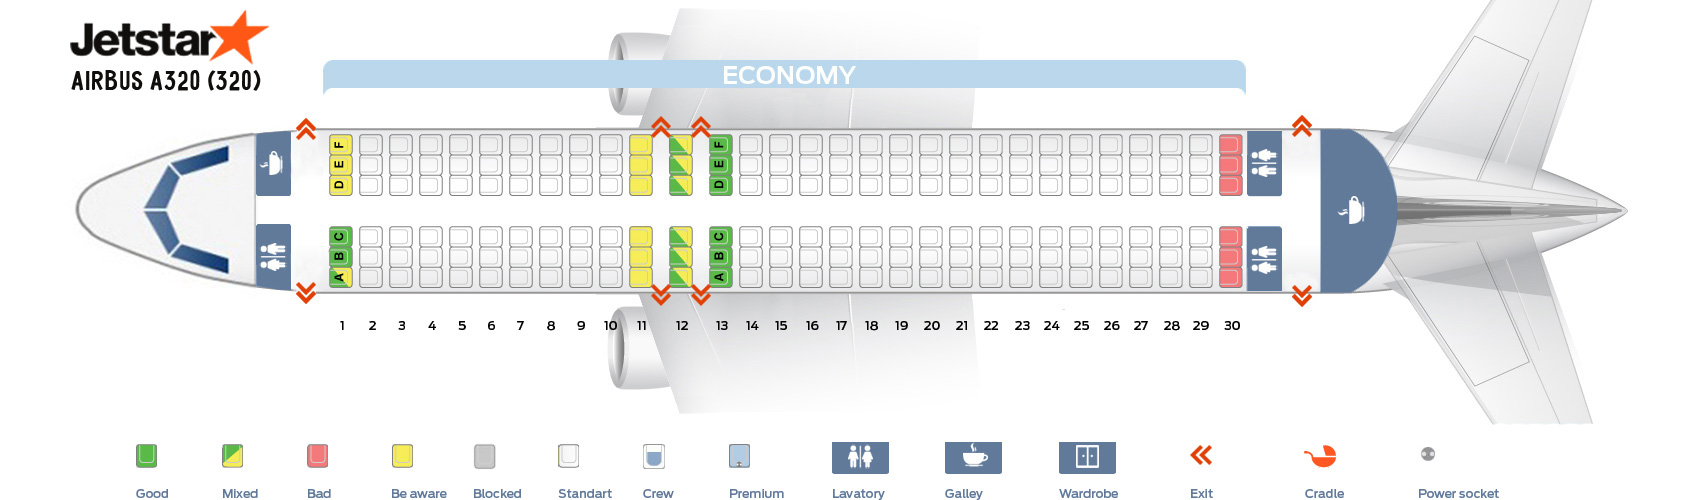 Seat Map Airbus A320-200 Jetstar Airlines